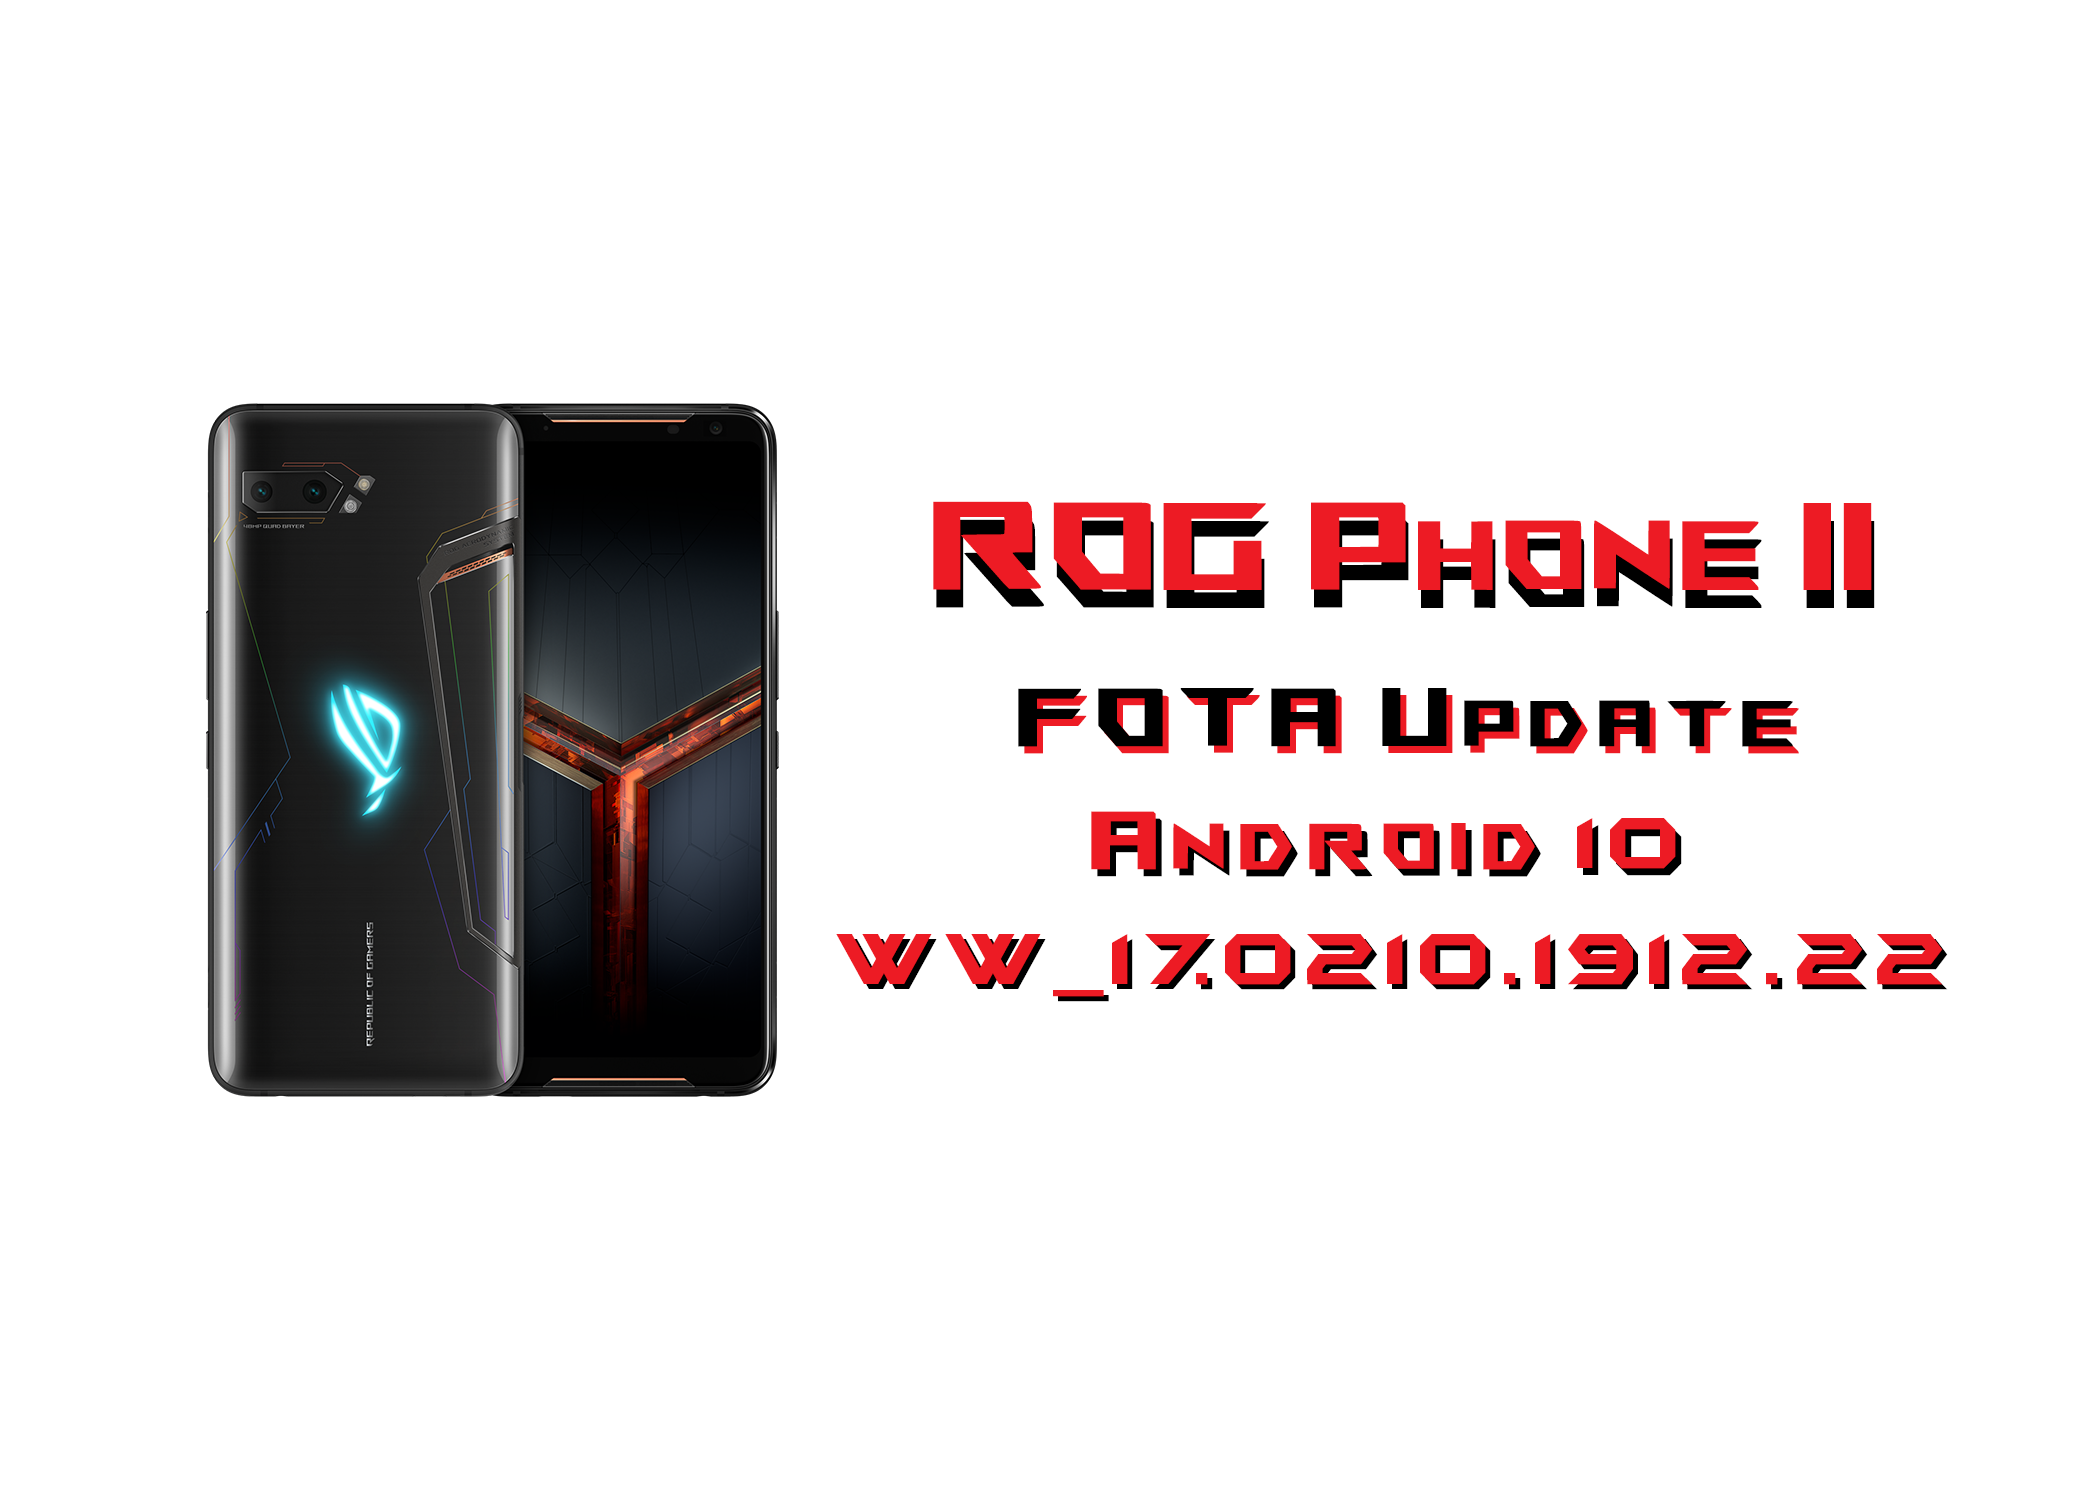 [Unofficial Update WW_17.0210.1912.22] Android 10 Beta (Leak) cho ROG Phone II